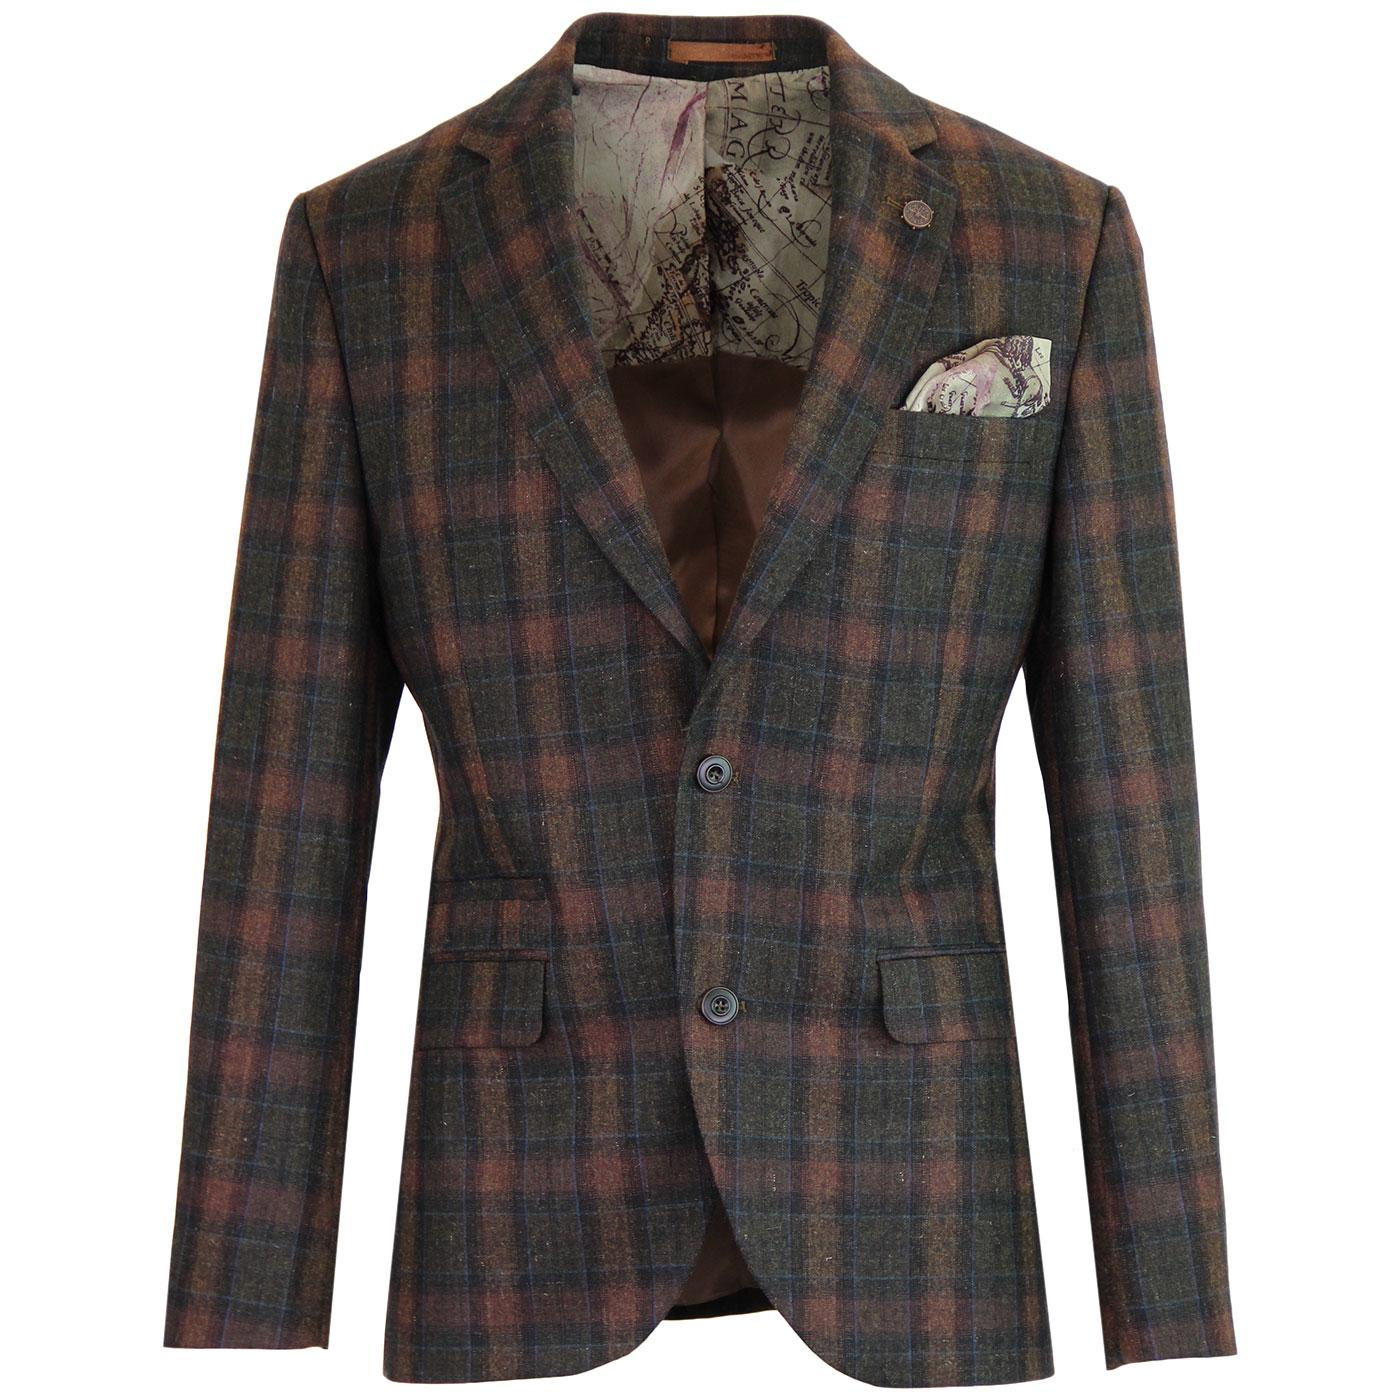 GIBSON LONDON Mod Tartan Check Suit Blazer SAGE